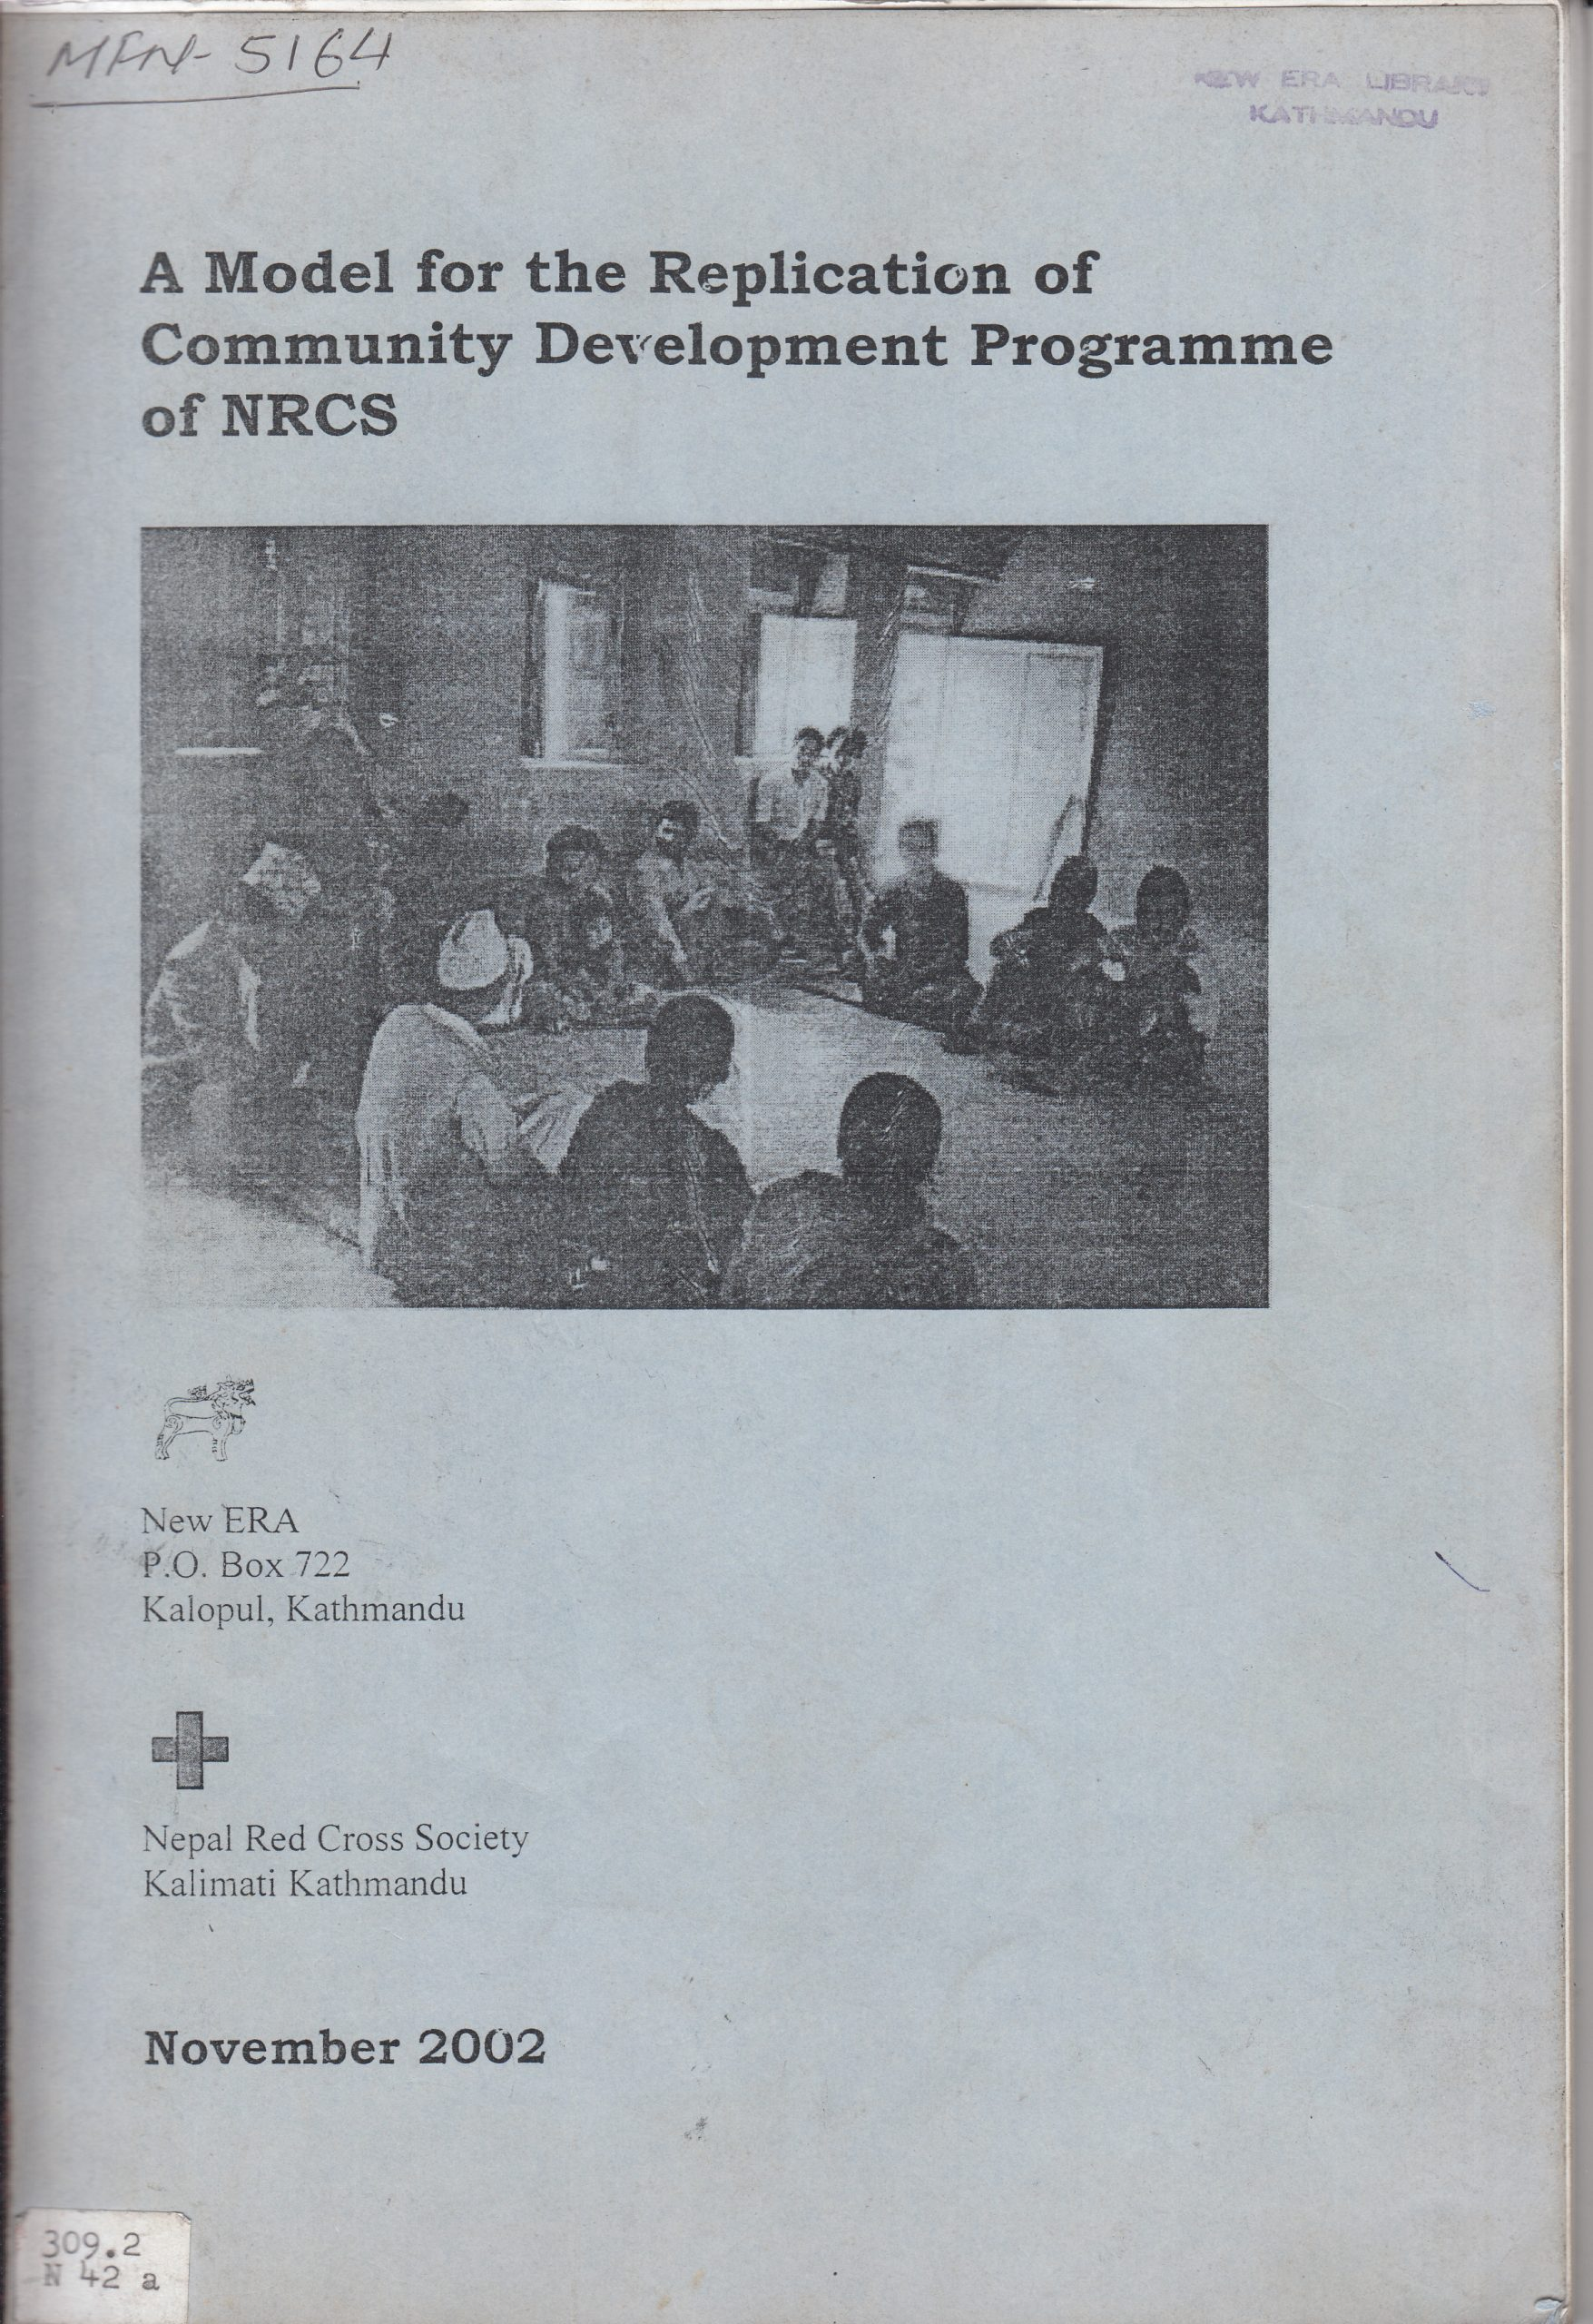 A Model for the Replication of Community Development Program of NRCS